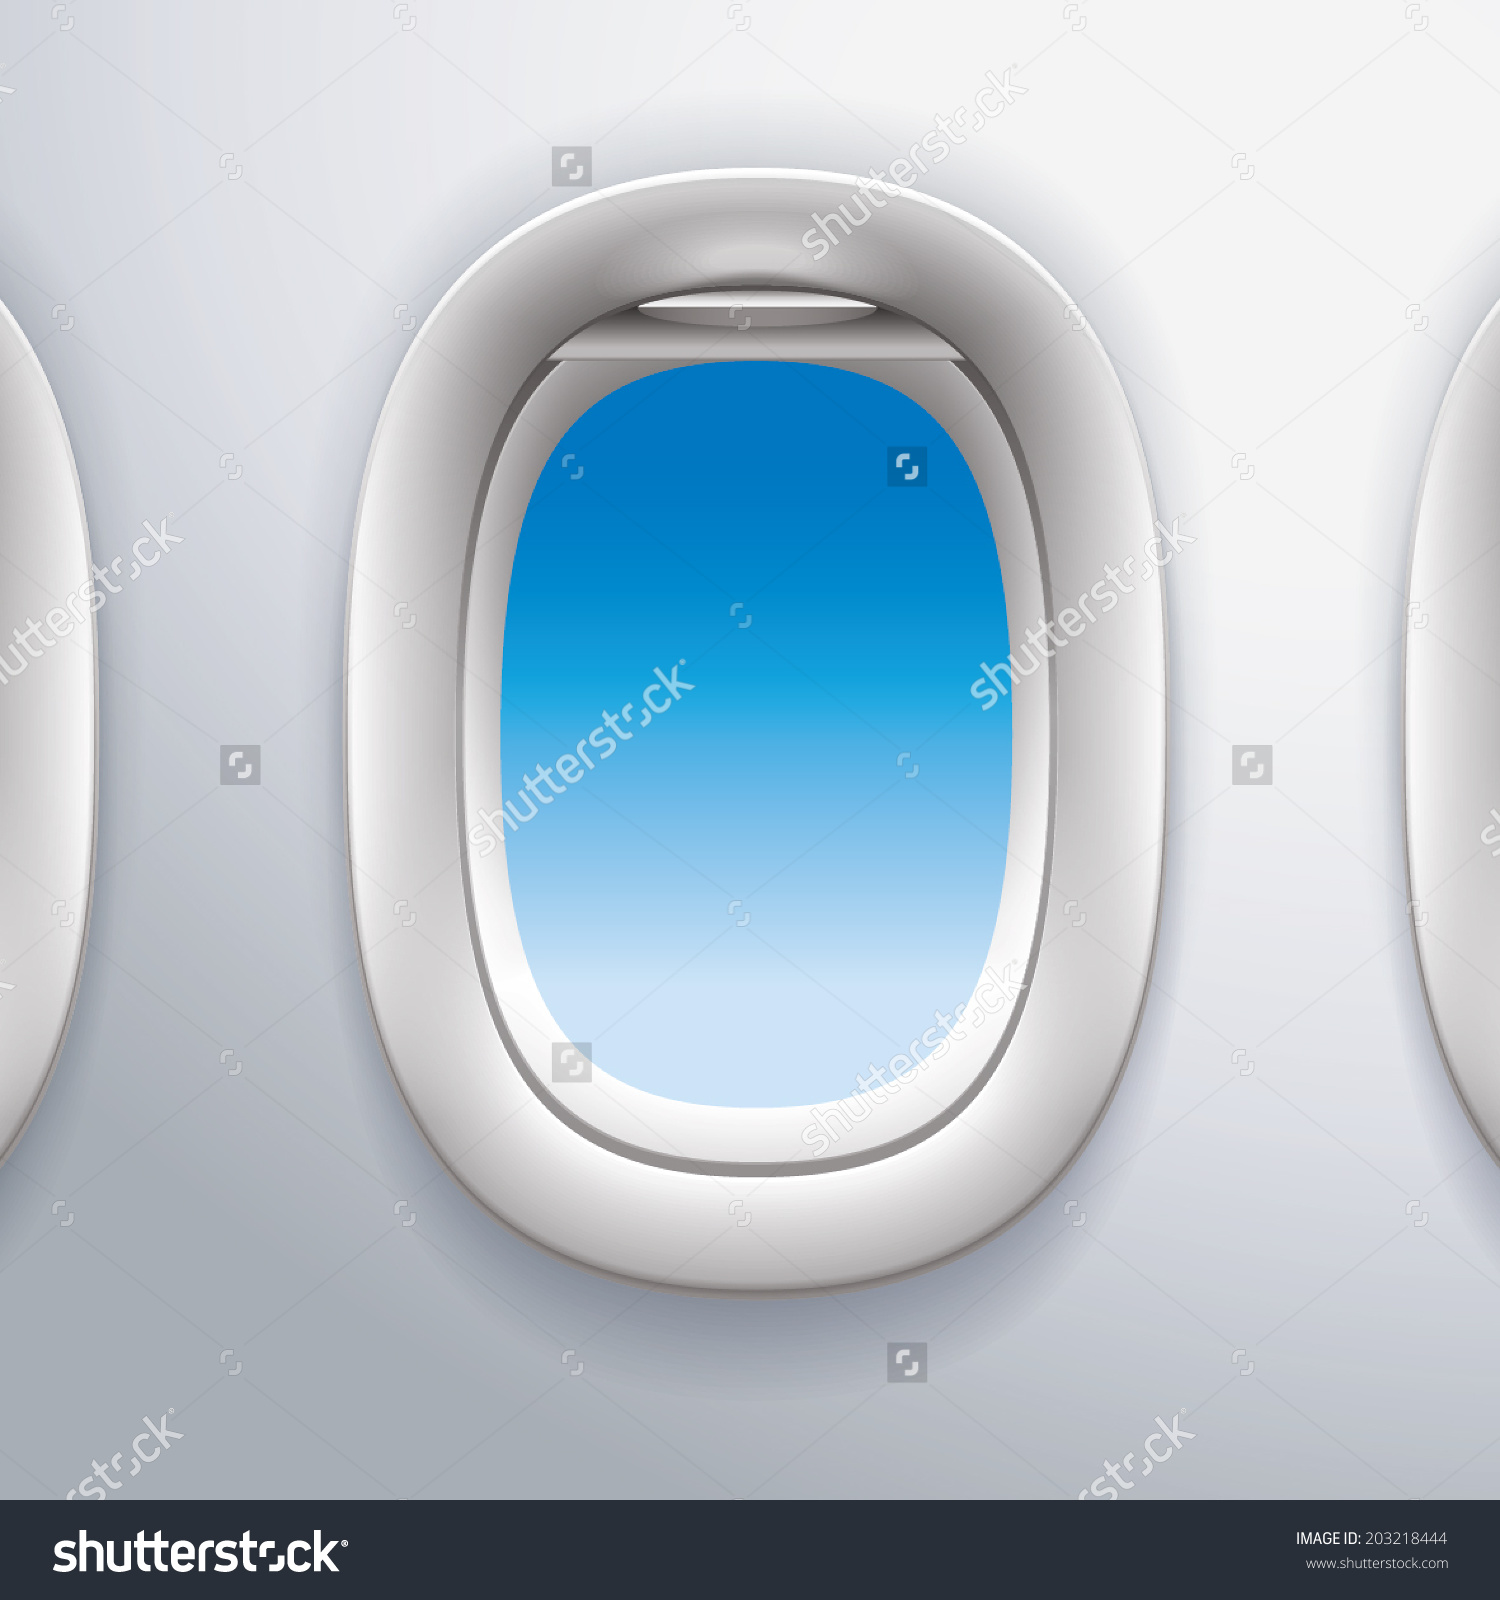 Airplane window clipart.